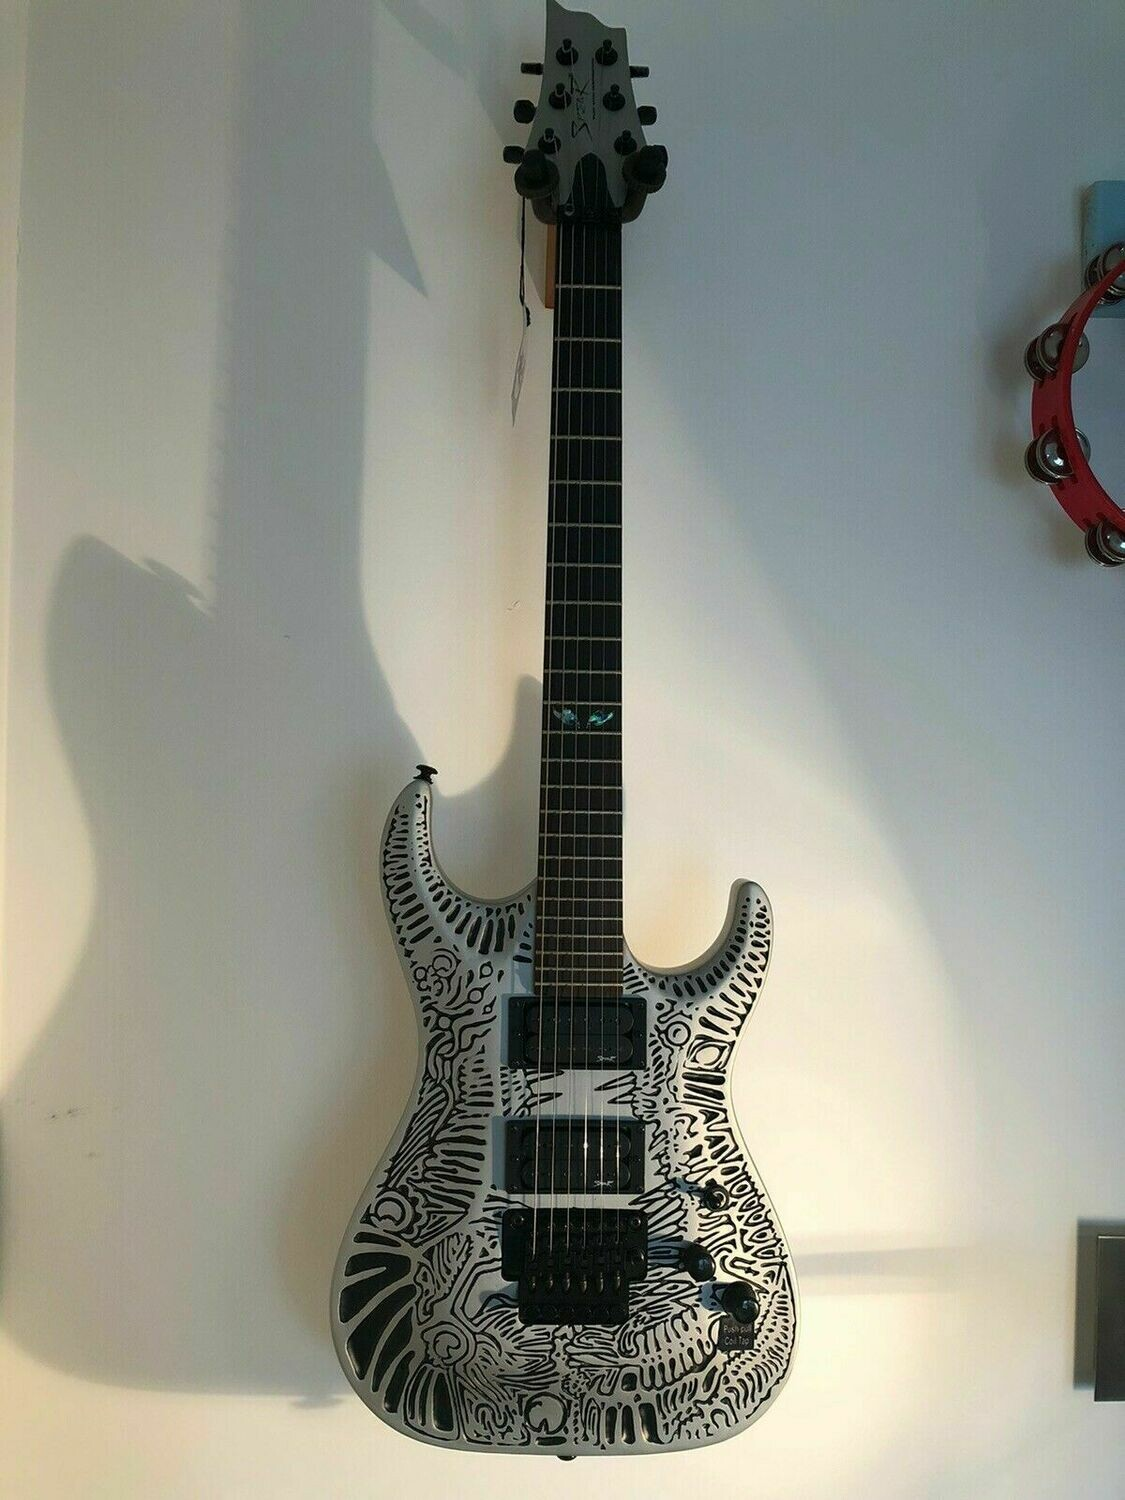 Spear Electric Guitar Floyd Rose Tiger TC-1 with Luthite body, embossed silver